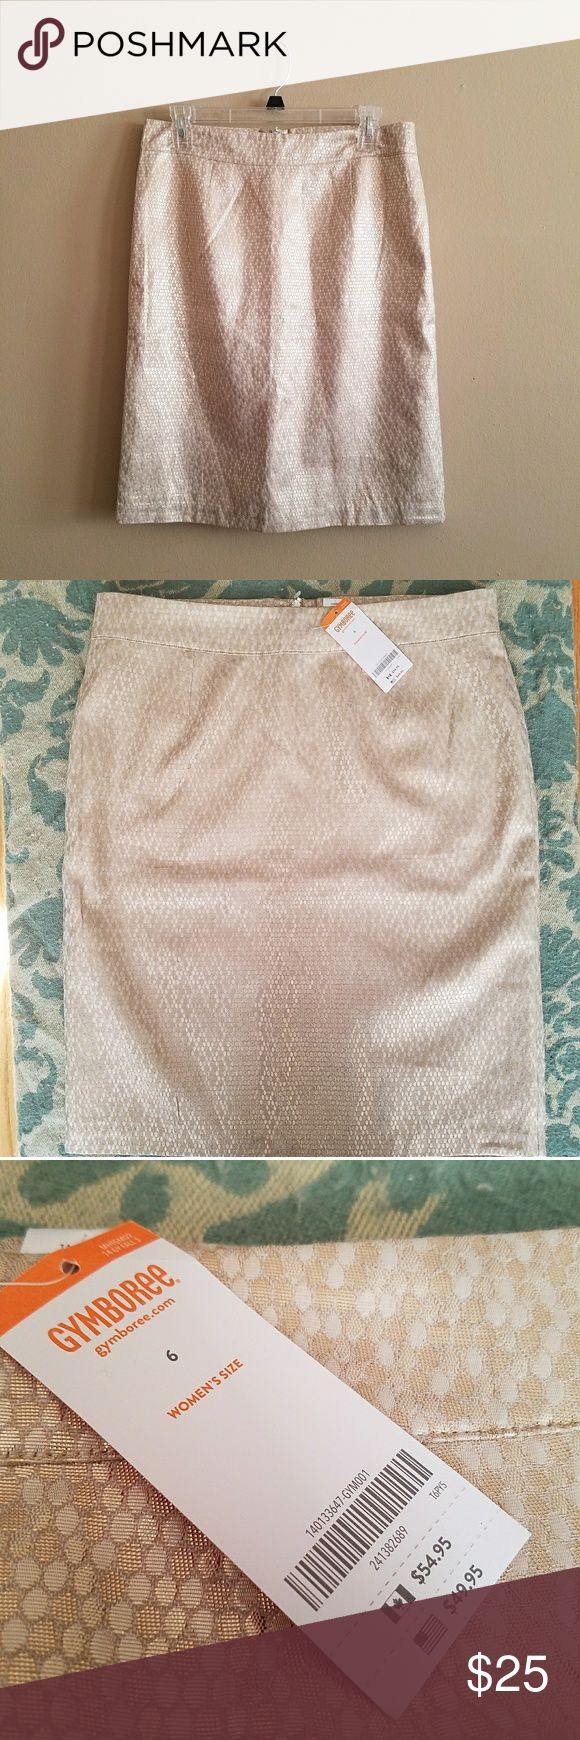 "Gymboree Women's Gold Pencil Skirt  Never worn, NWT. Fully lined, lightweight material with not much stretch. Zipper in the back and darting on front and back  56% polyester 30% rayon 14% metallic  Measurements, taken laid flat  Waist 15.75"" Hip 19.5"" Length 22.25"" Gymboree Skirts Pencil"